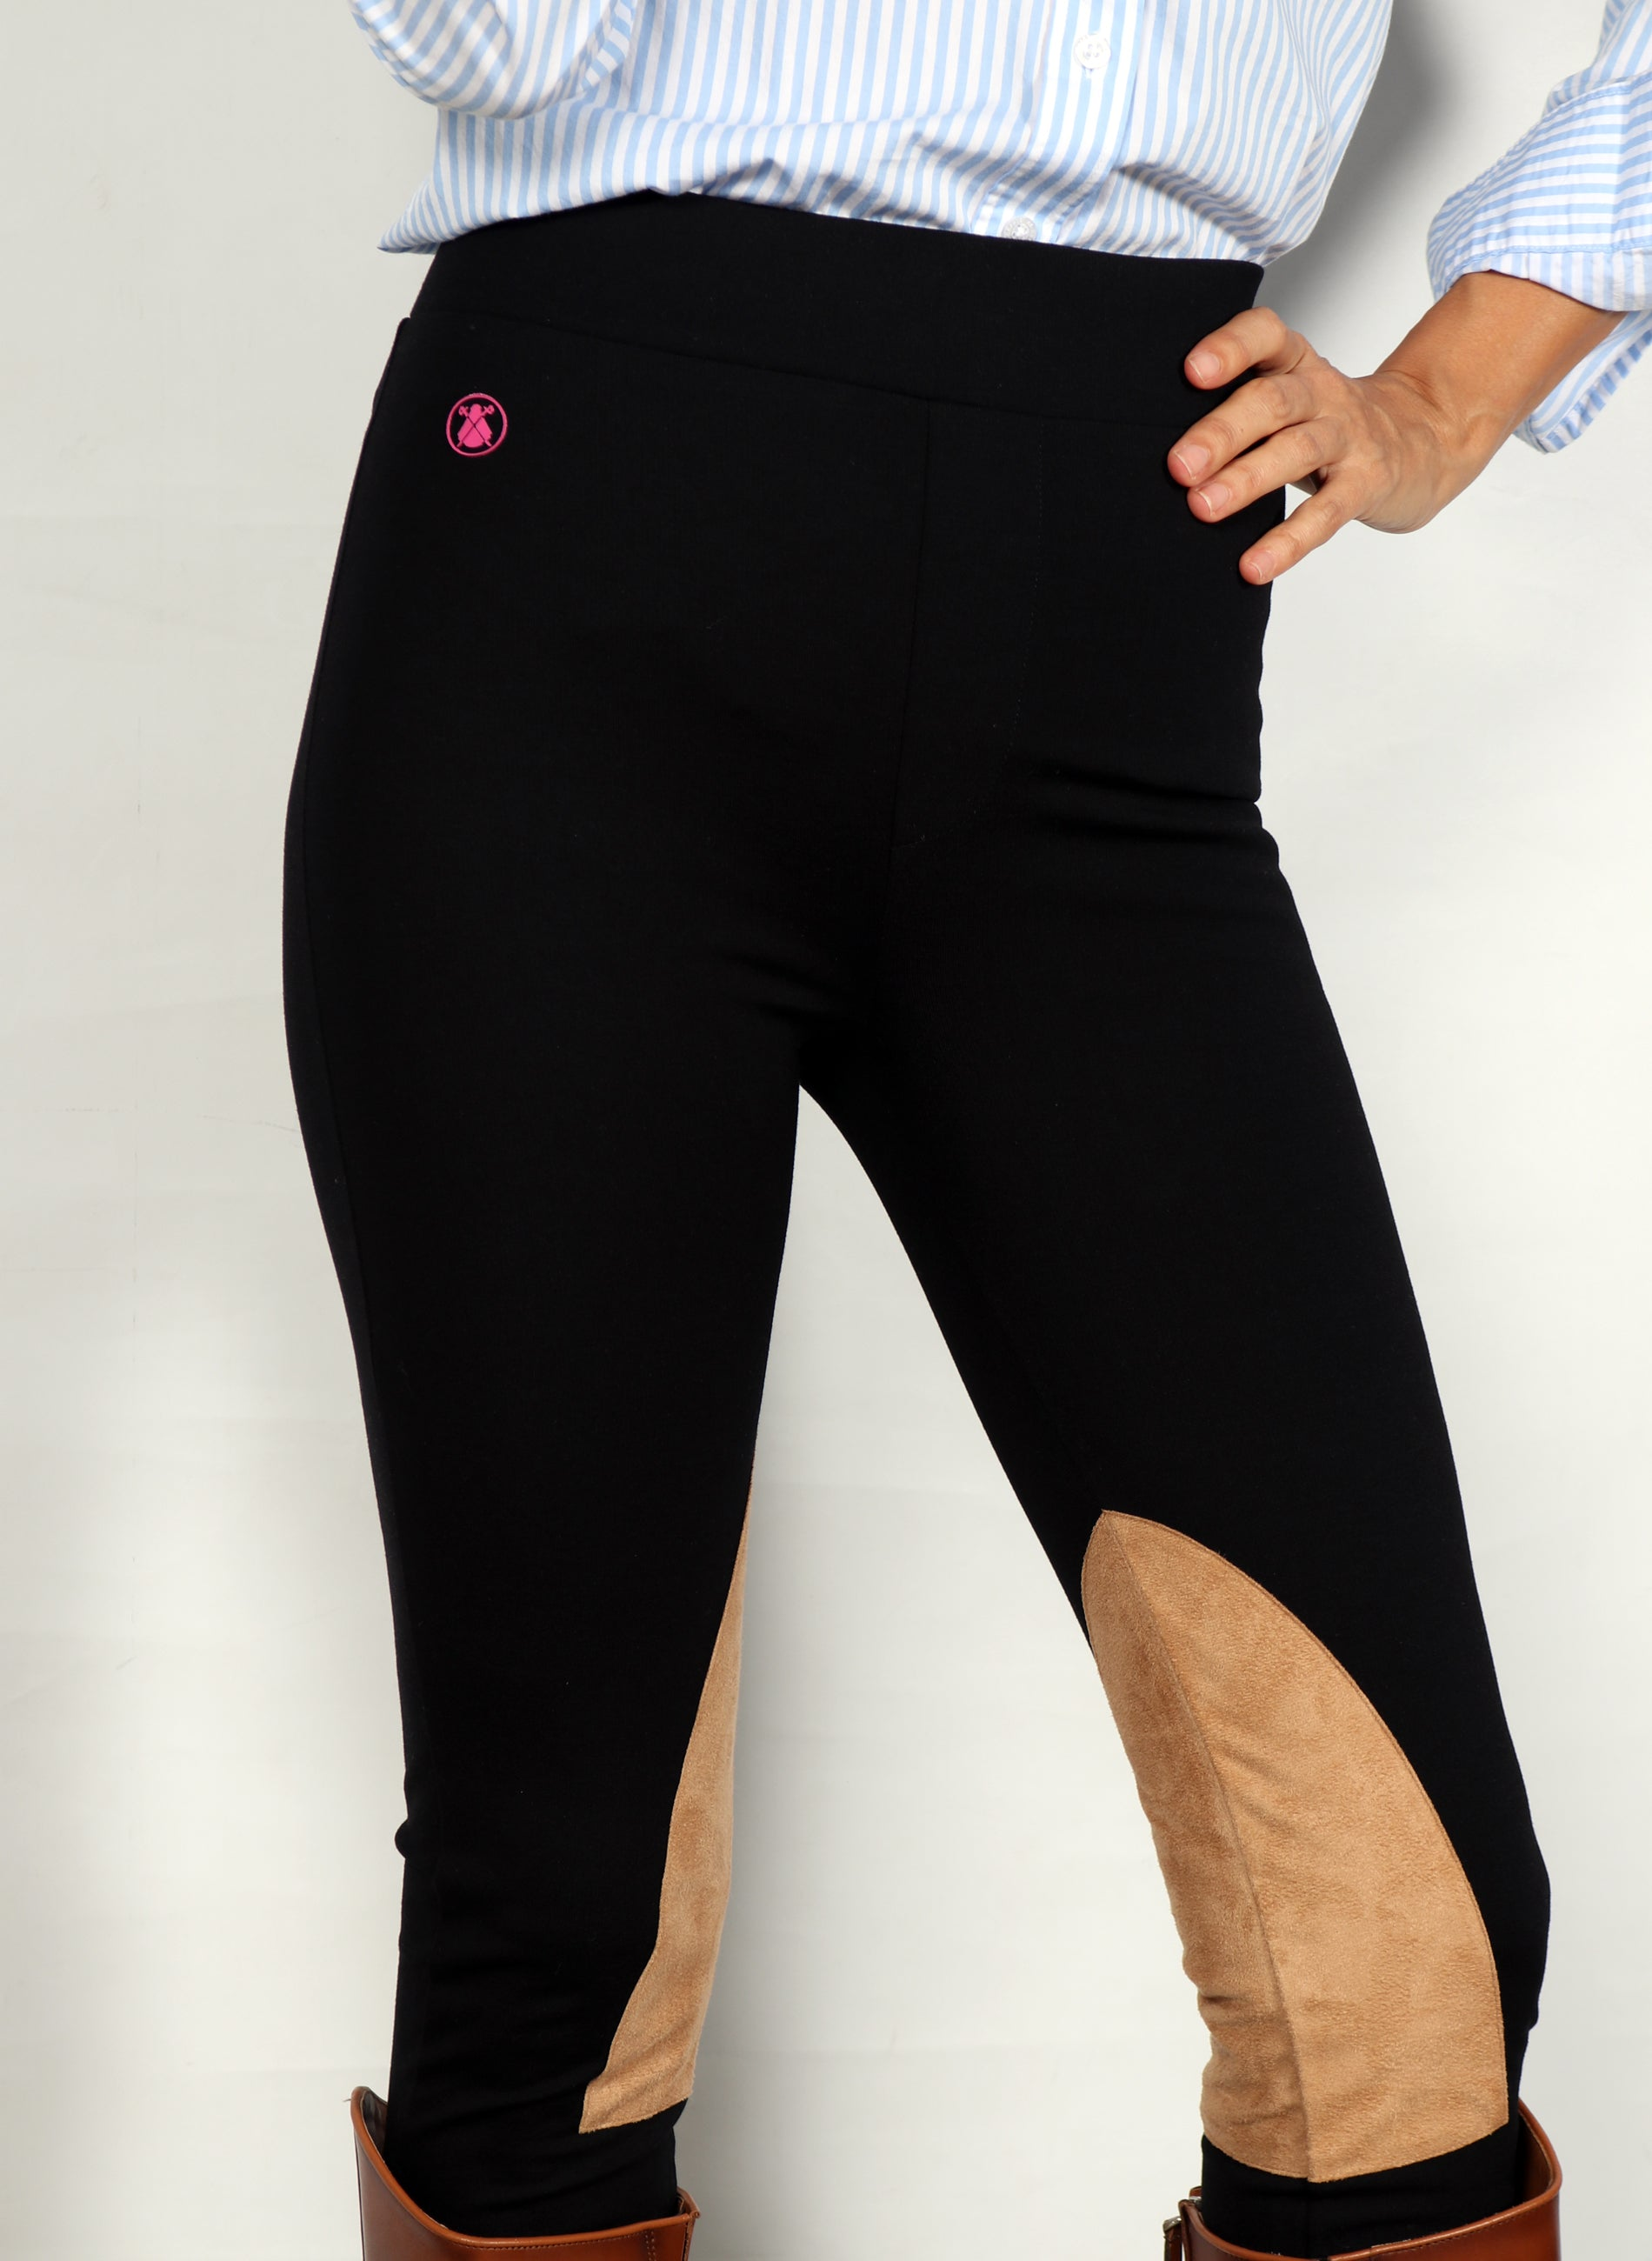 Women's Black Riding Trousers